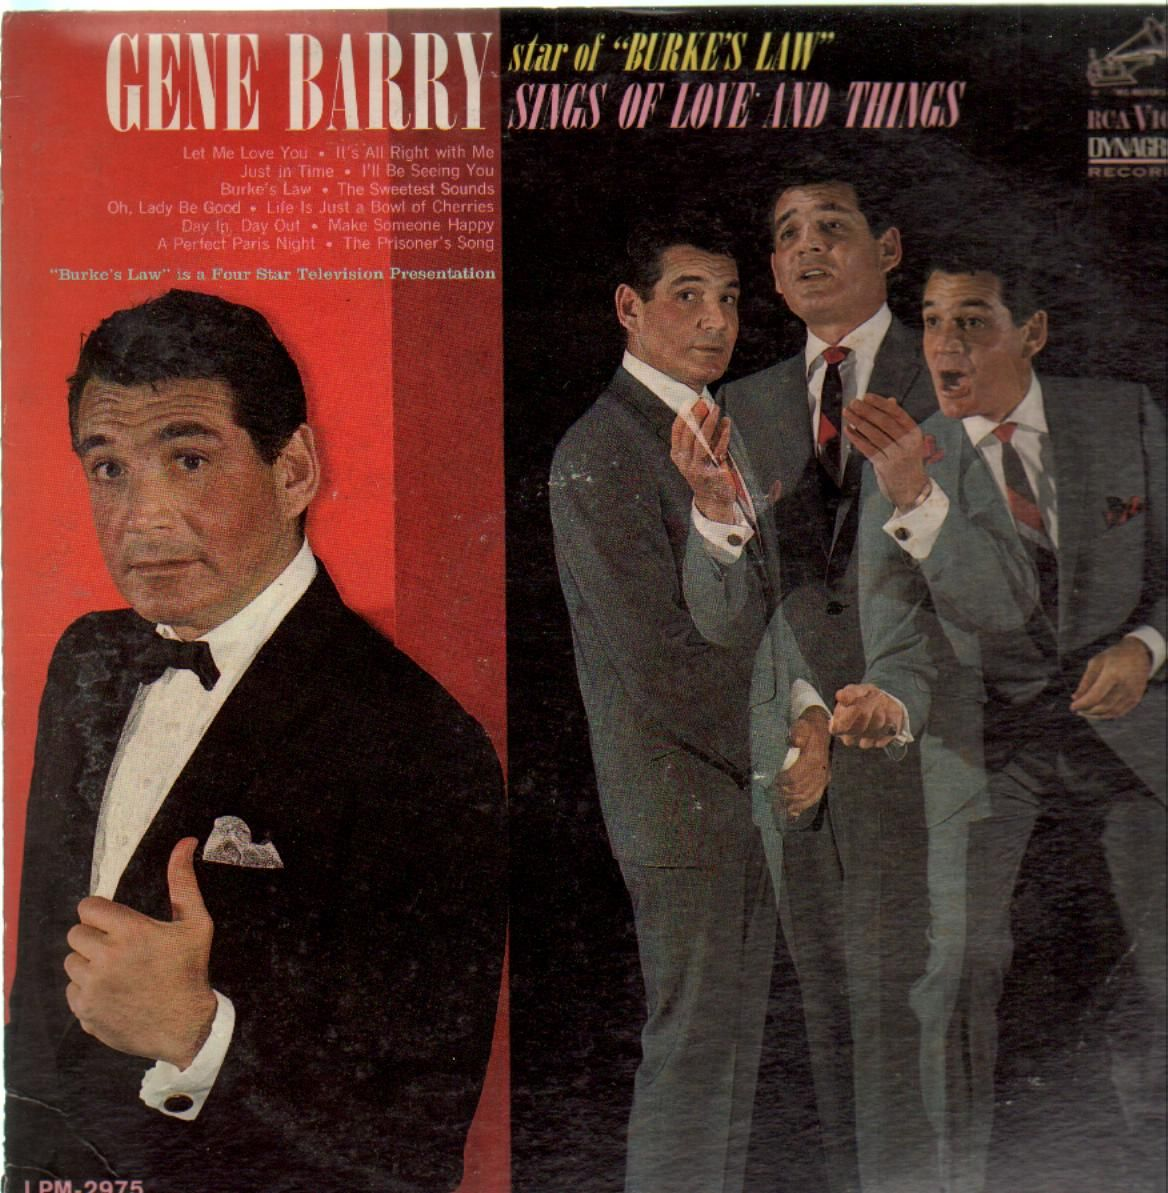 Barry, Gene Sings Of Love And Things  Vinyl